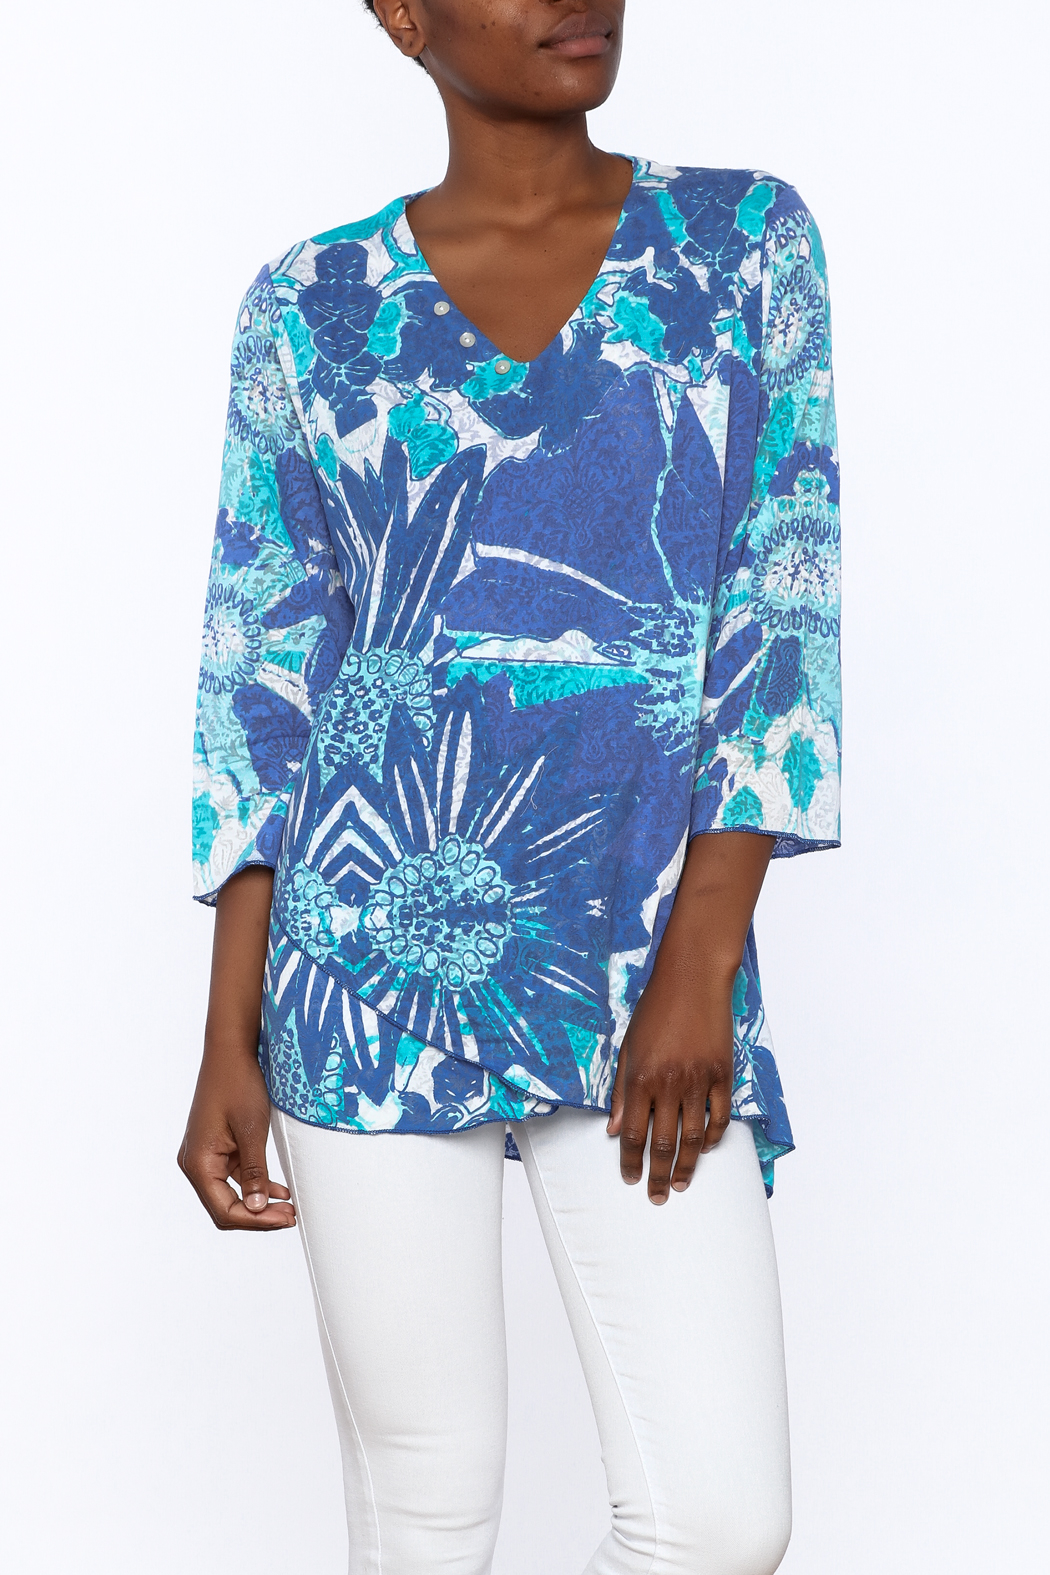 Lulu B Blue Print Tunic Top - Front Cropped Image